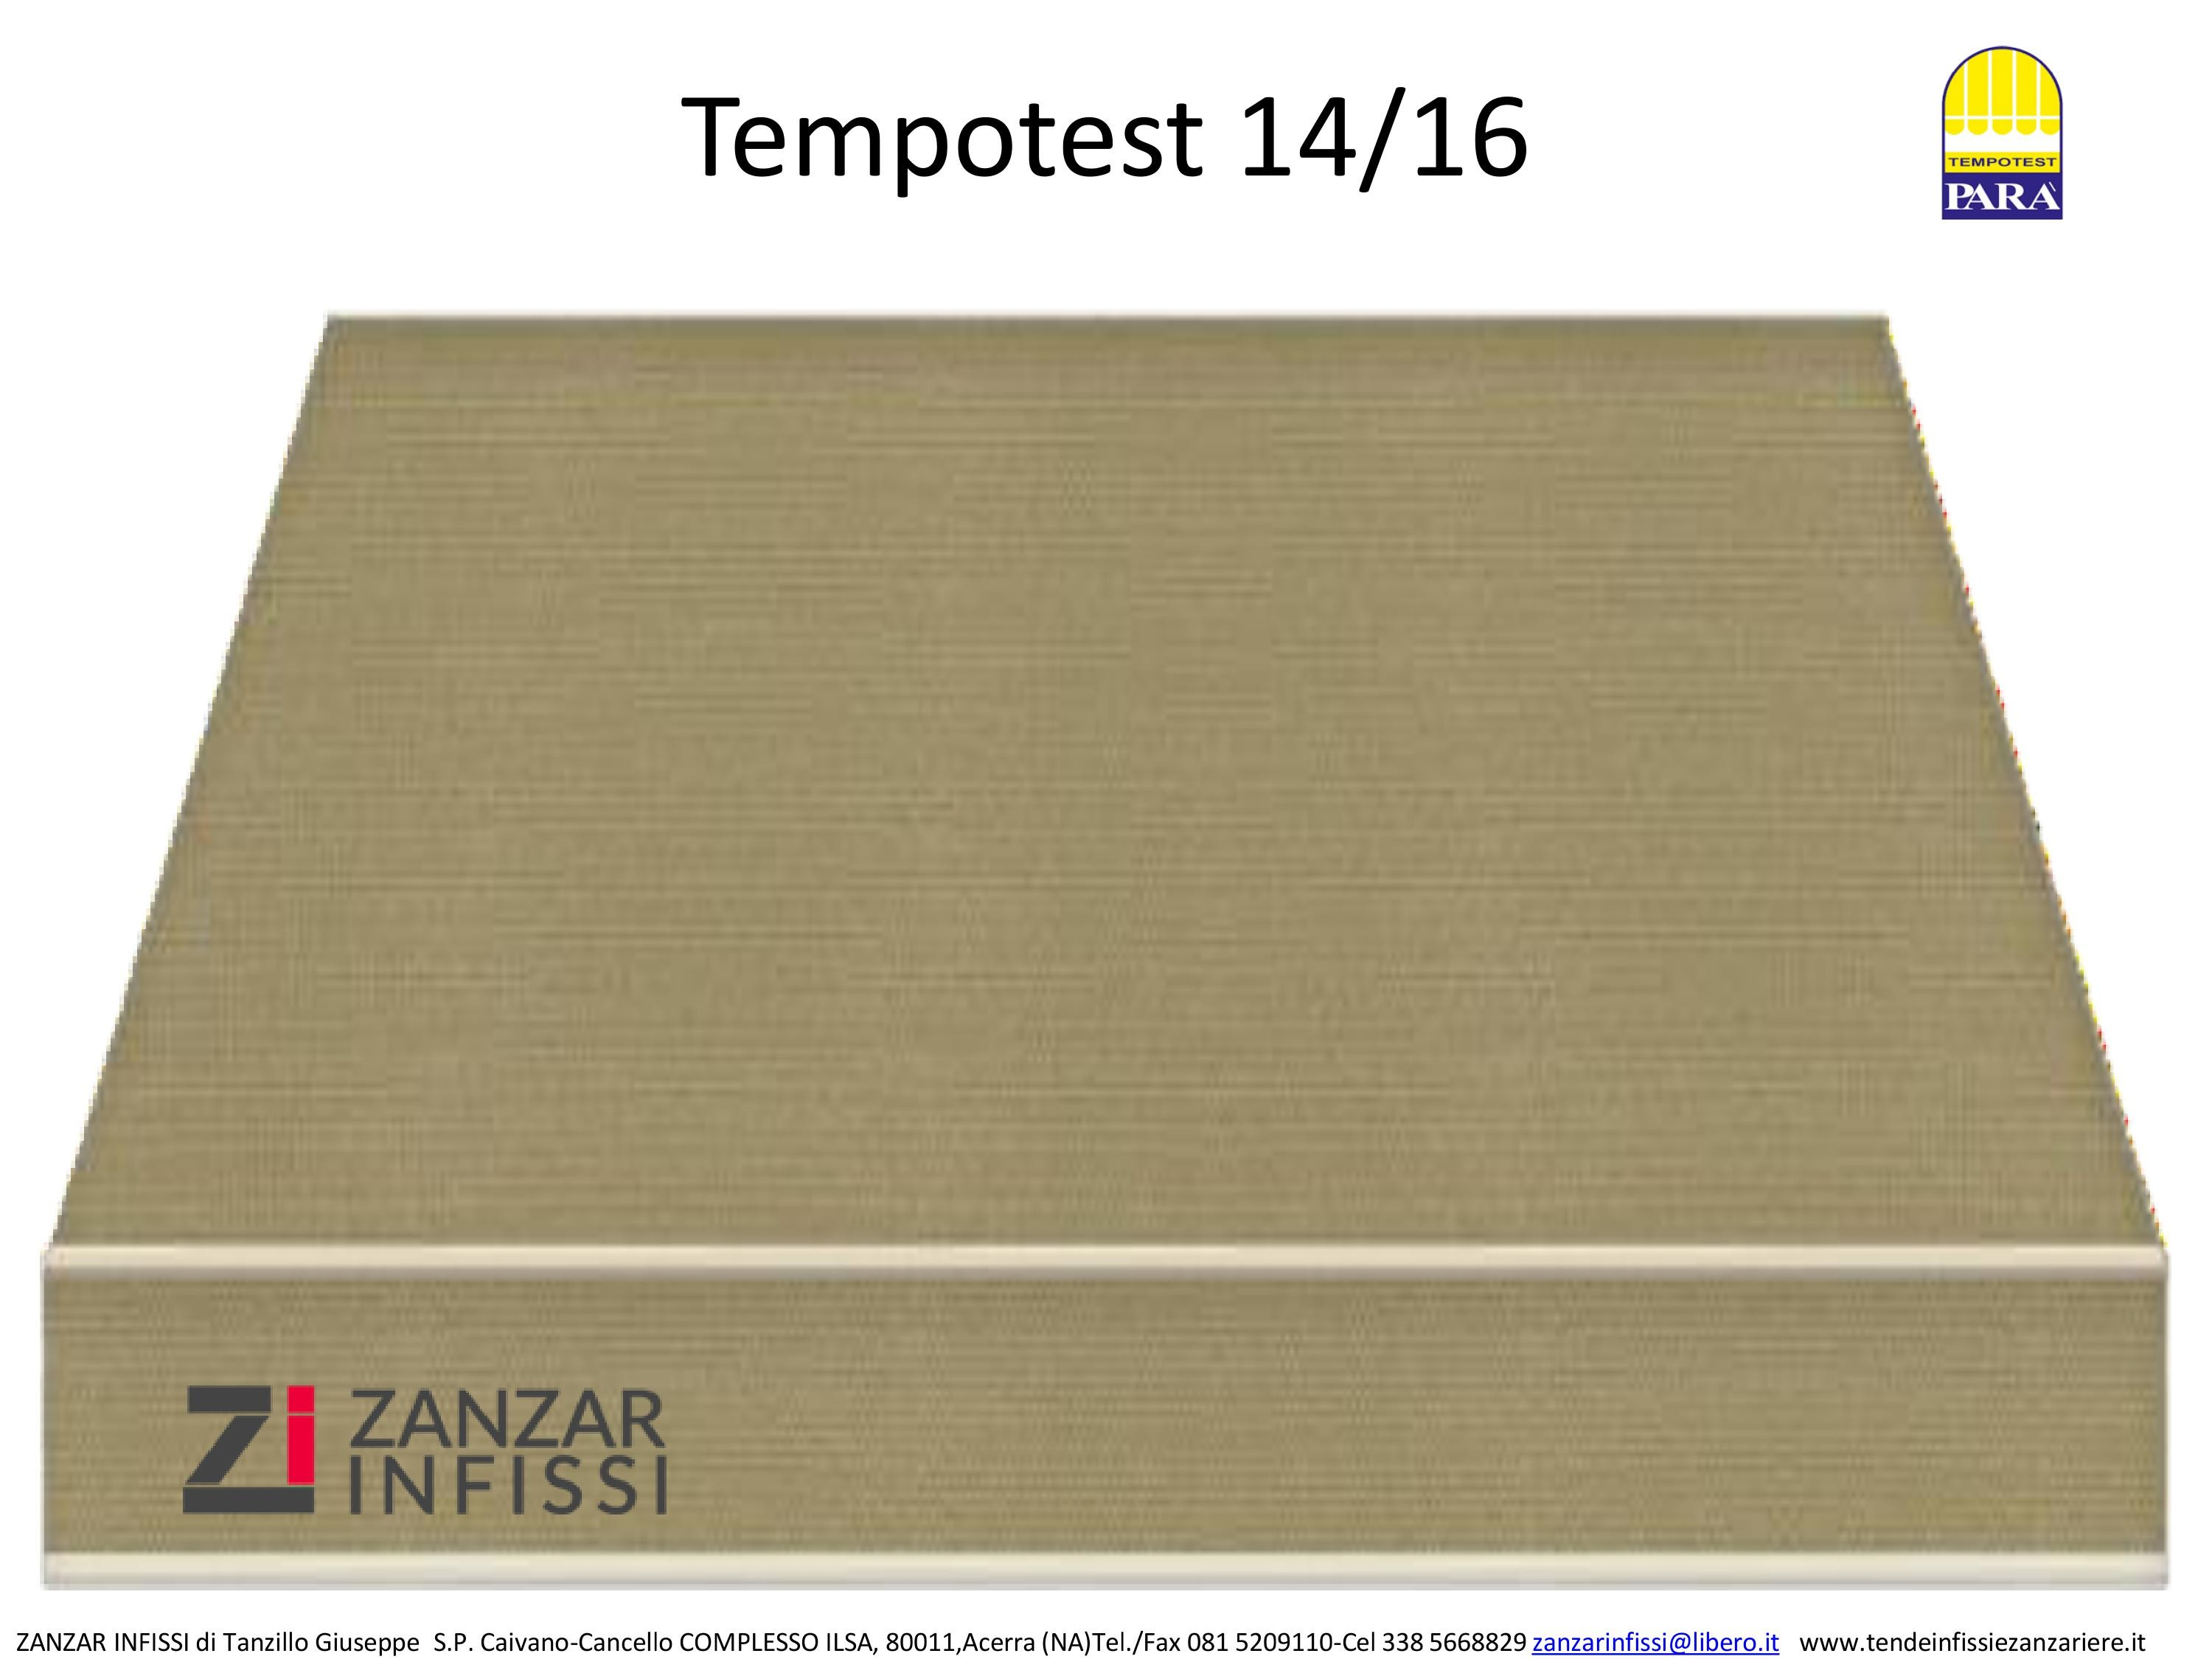 Tempotest 14/16